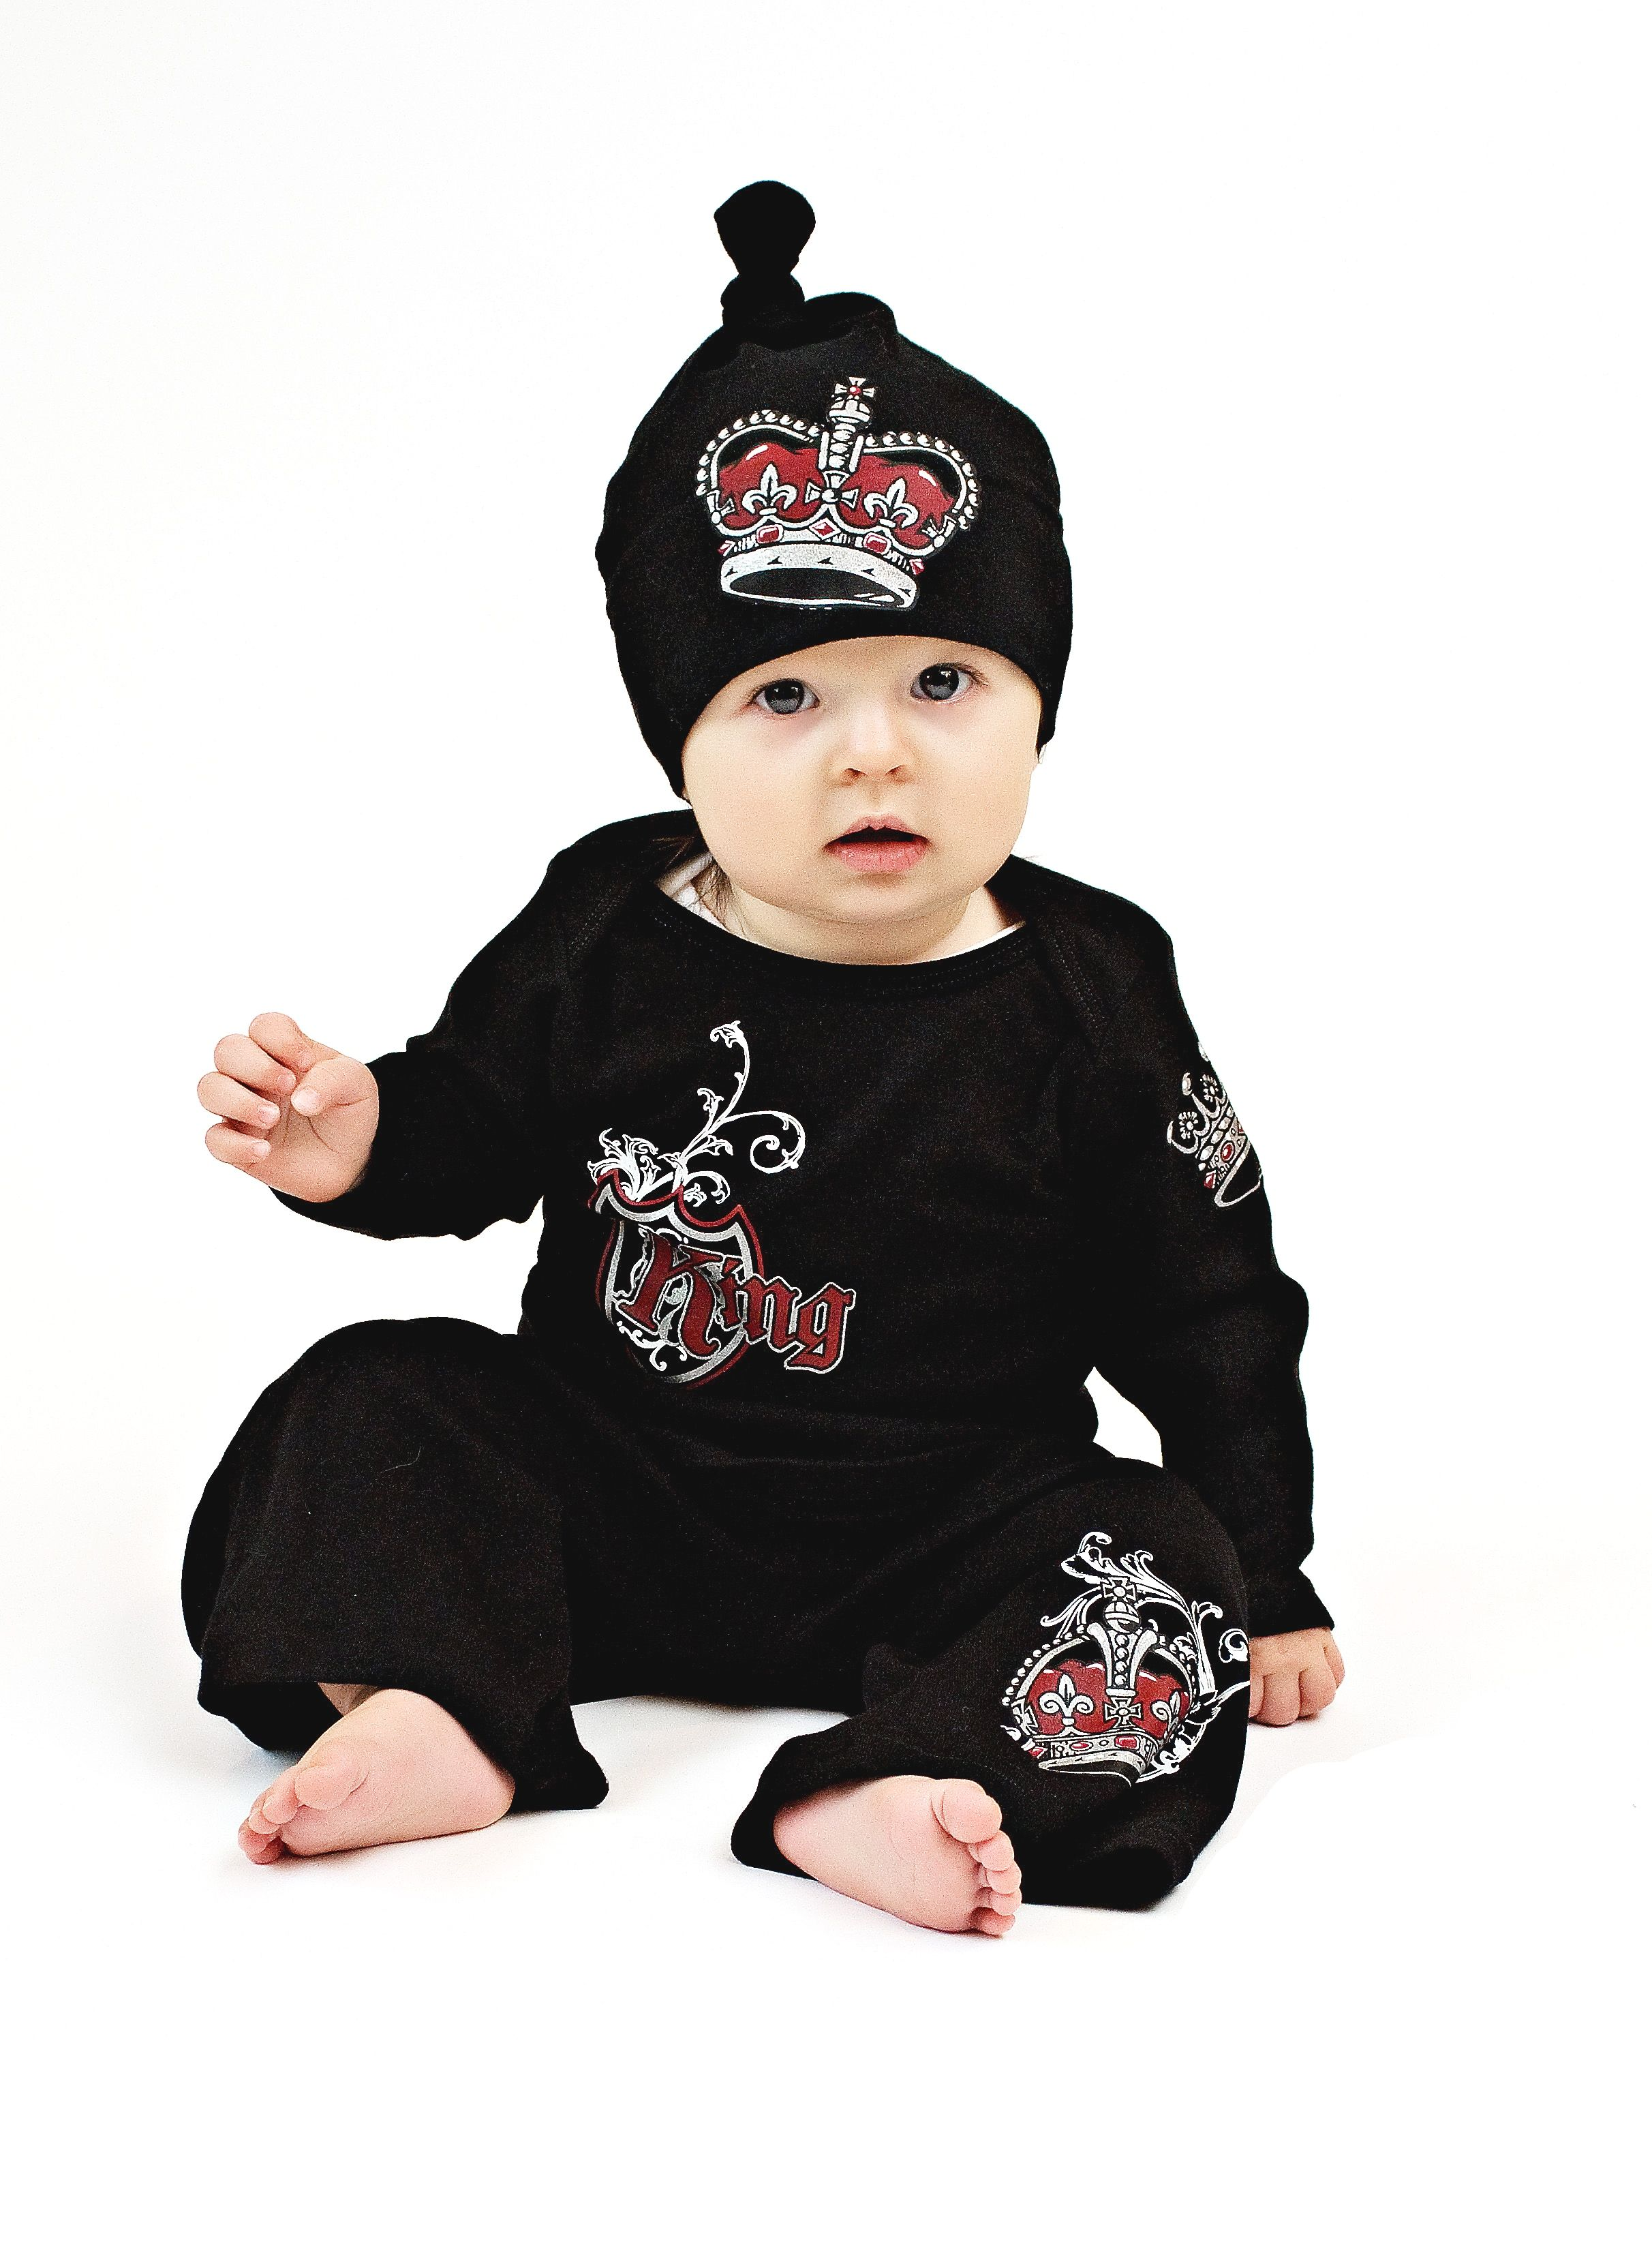 Rock Clothing Rock Baby Clothes Baby Clothes Design